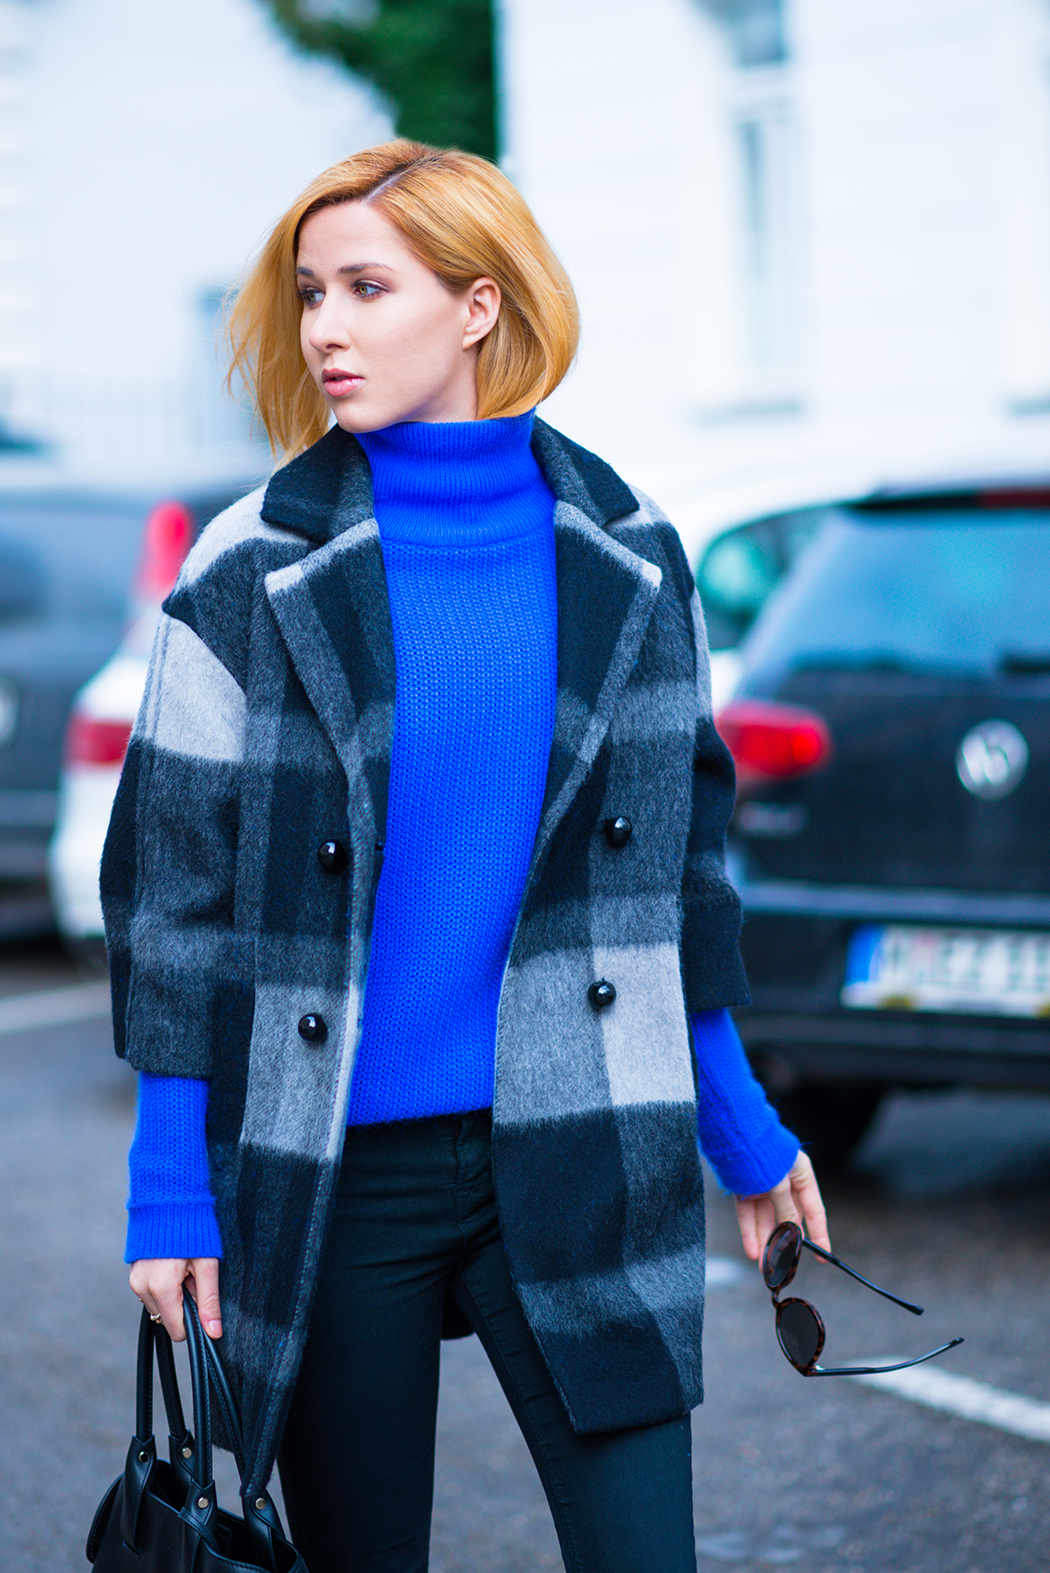 Fashionblog-Fashionblogger-Fashion-Blog-Blogger-Muenchen-Berlin-Deutschland-Fashion_Week-Streetstyle-Look-Lindarella-10-web